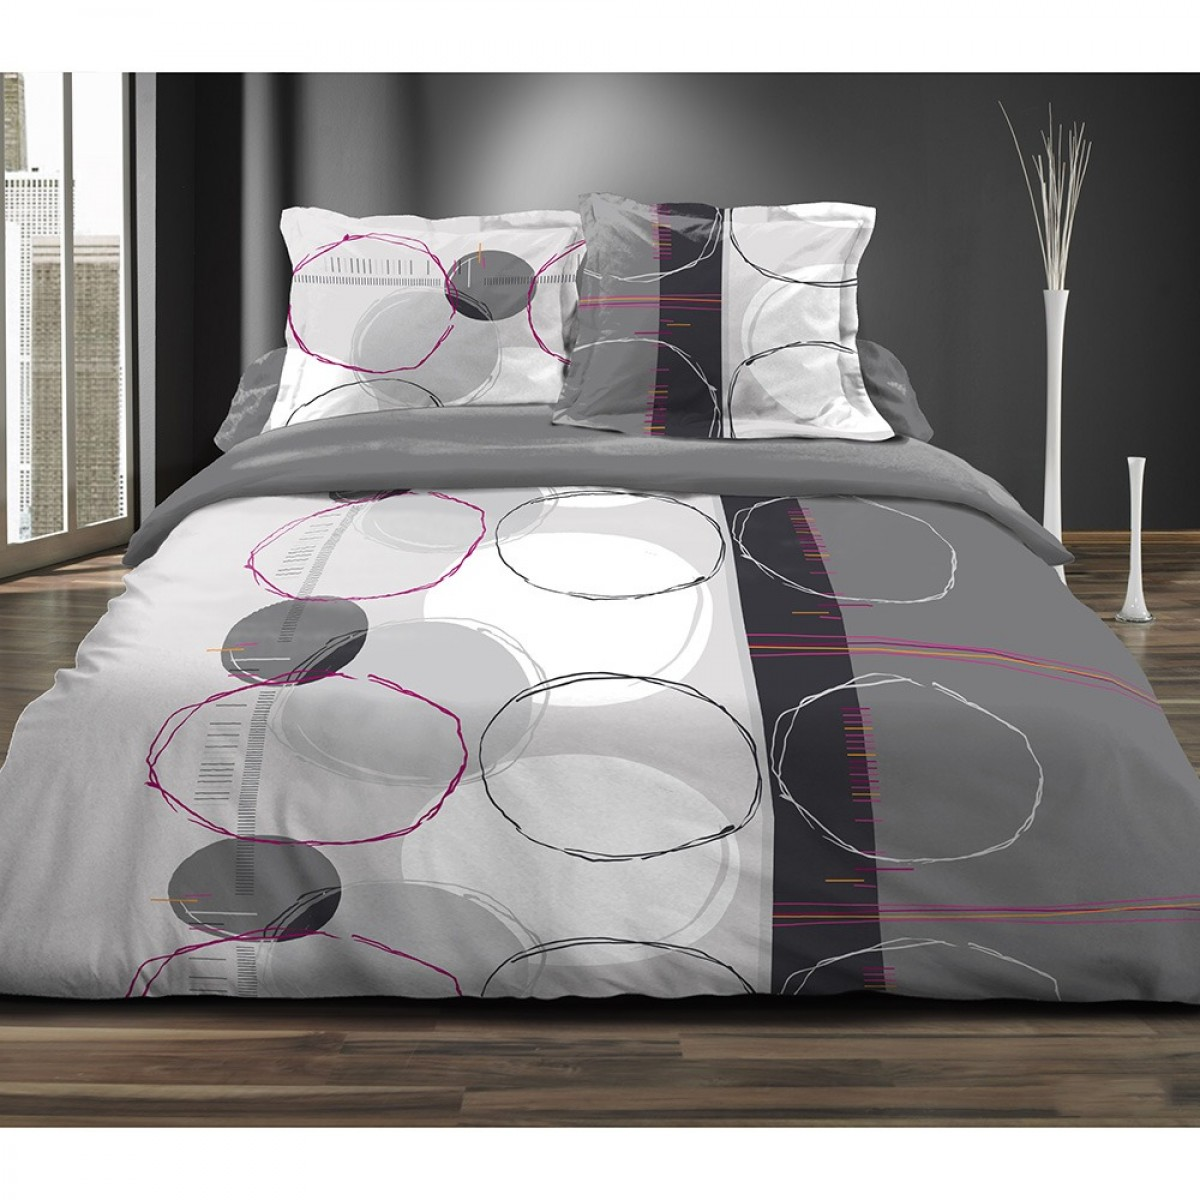 couette imprim e 220x240 cm cercles doodles les douces. Black Bedroom Furniture Sets. Home Design Ideas